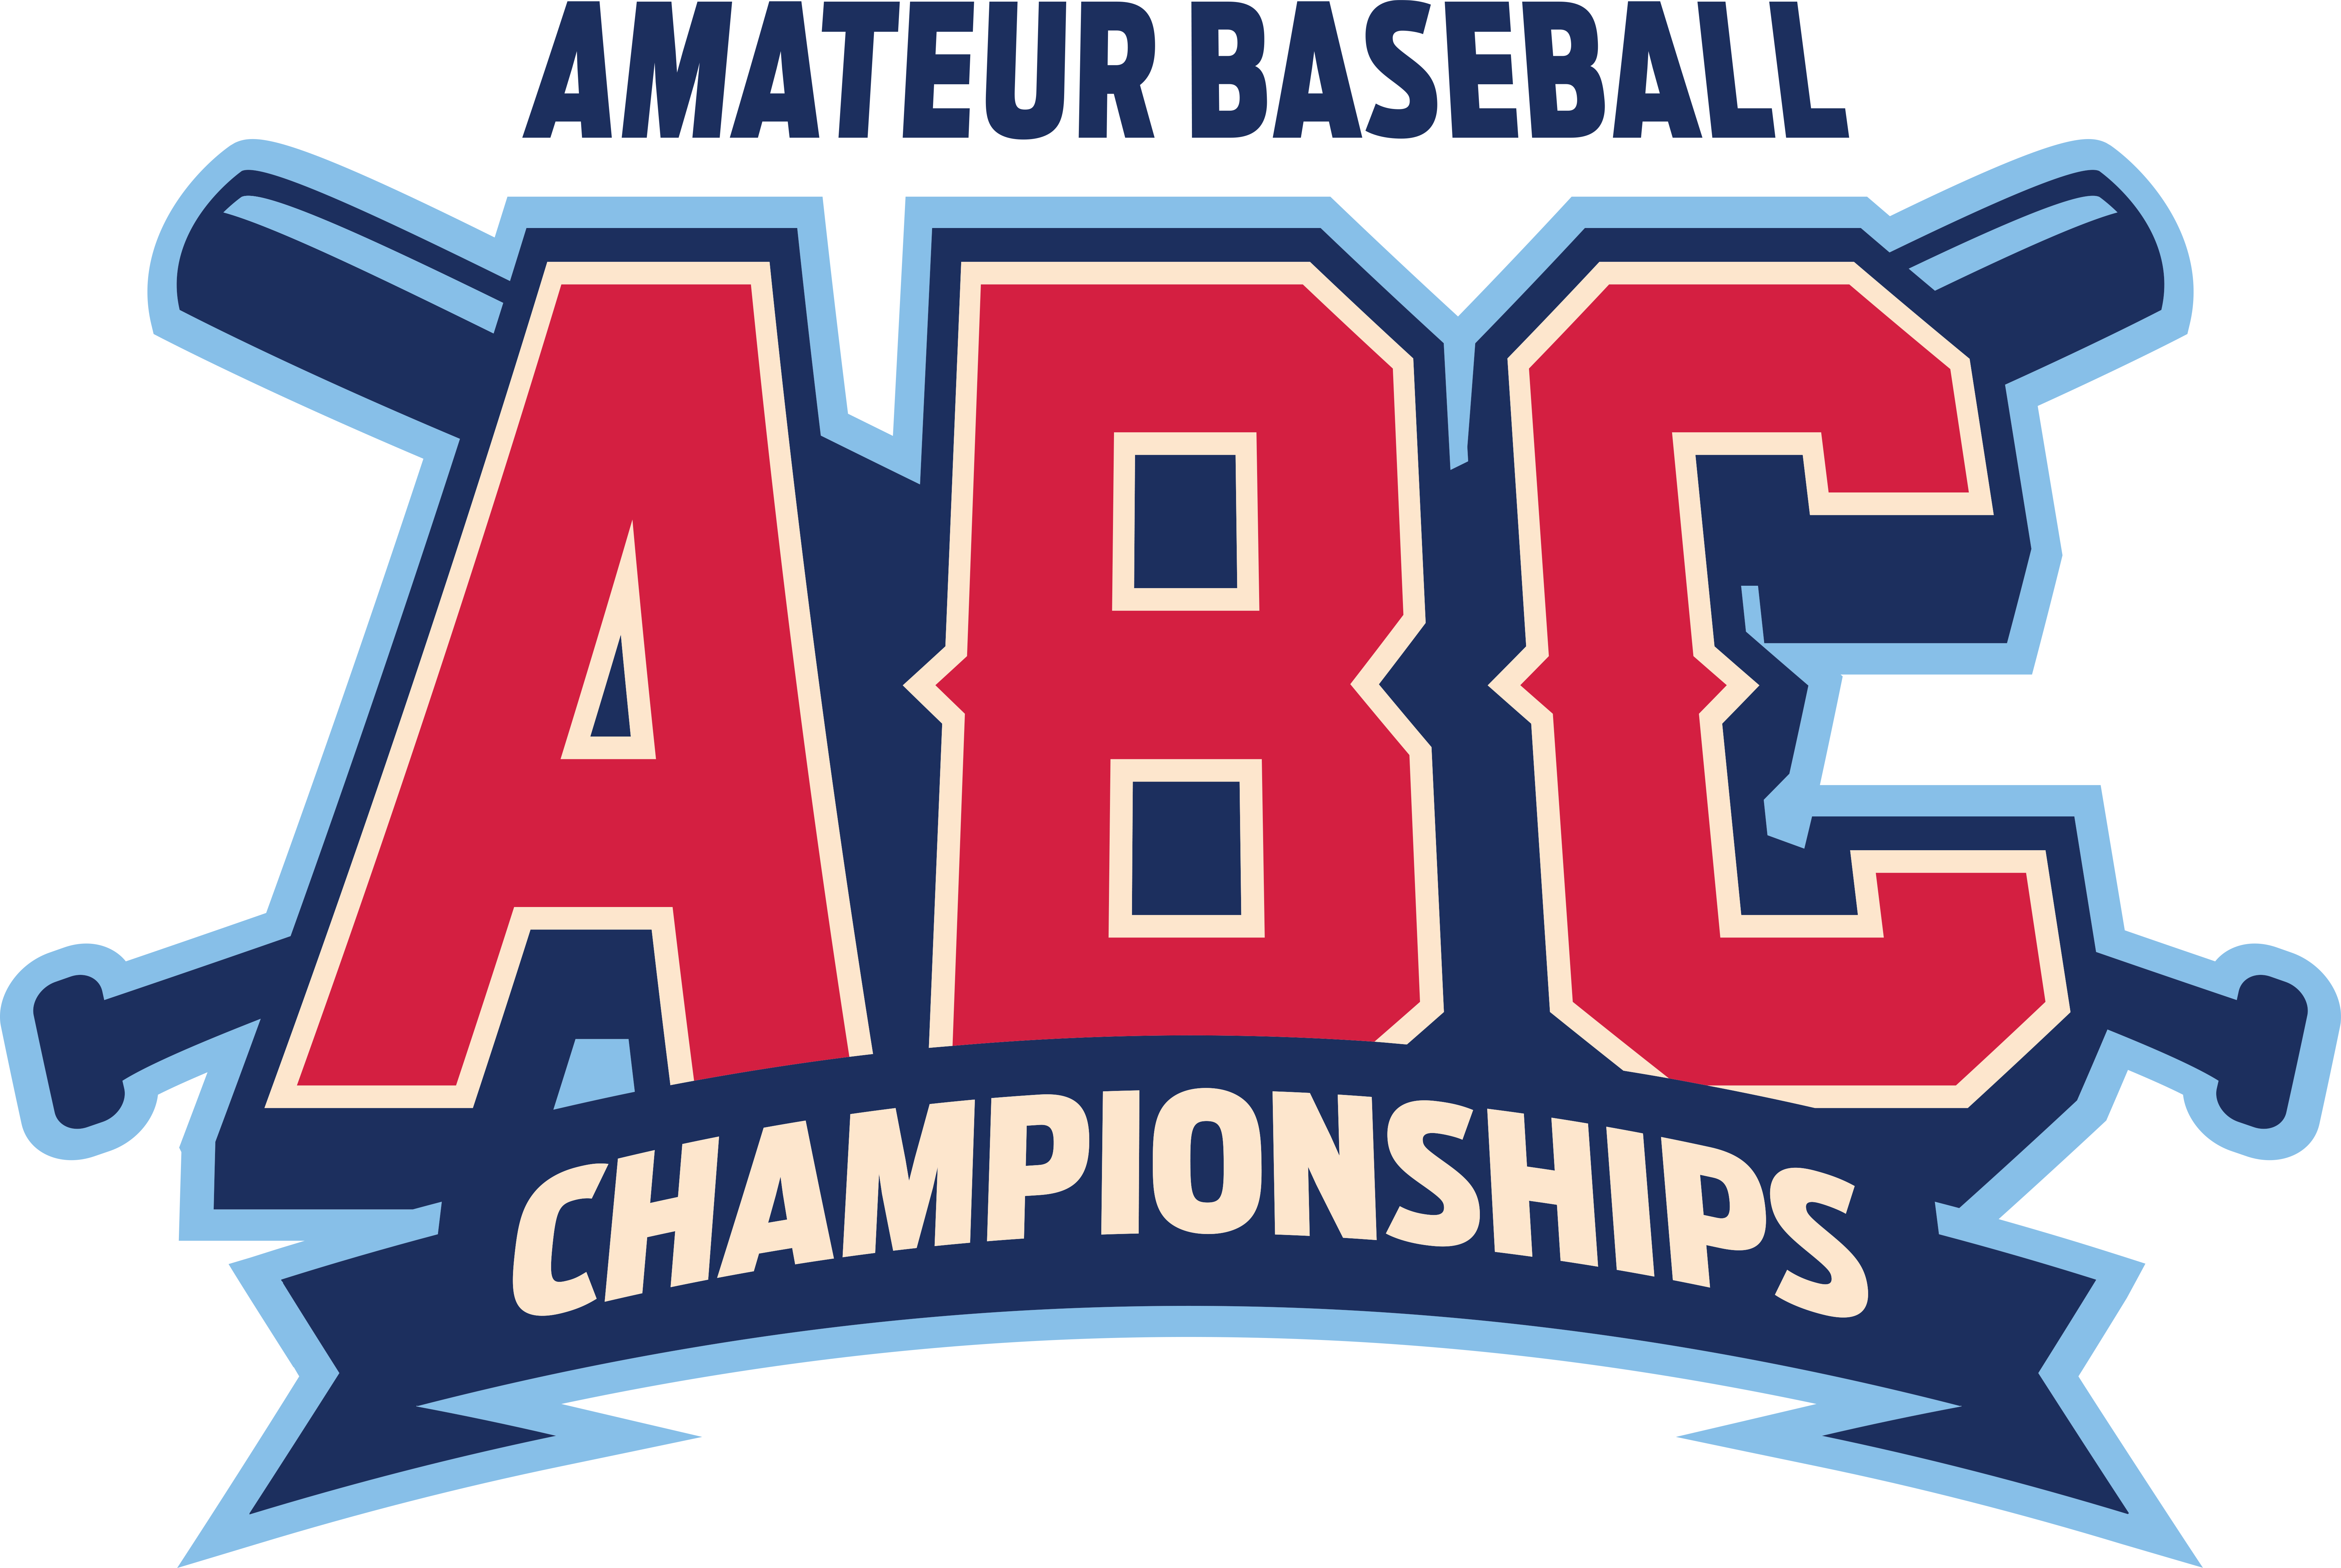 Youth Amateur Baseball Championships (D1 Only)